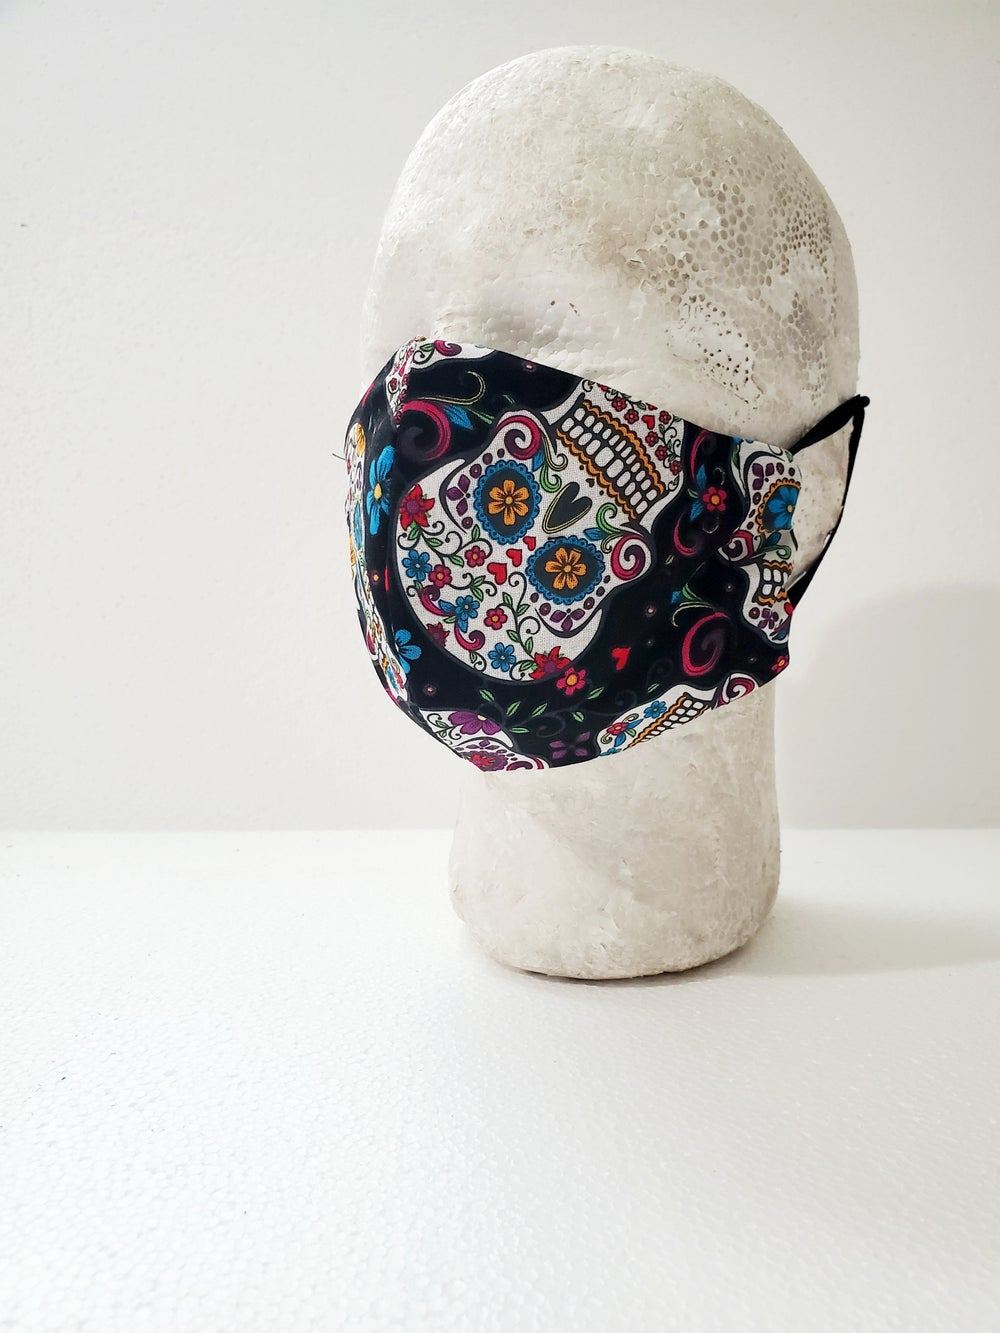 Calavera Fitted Face Mask